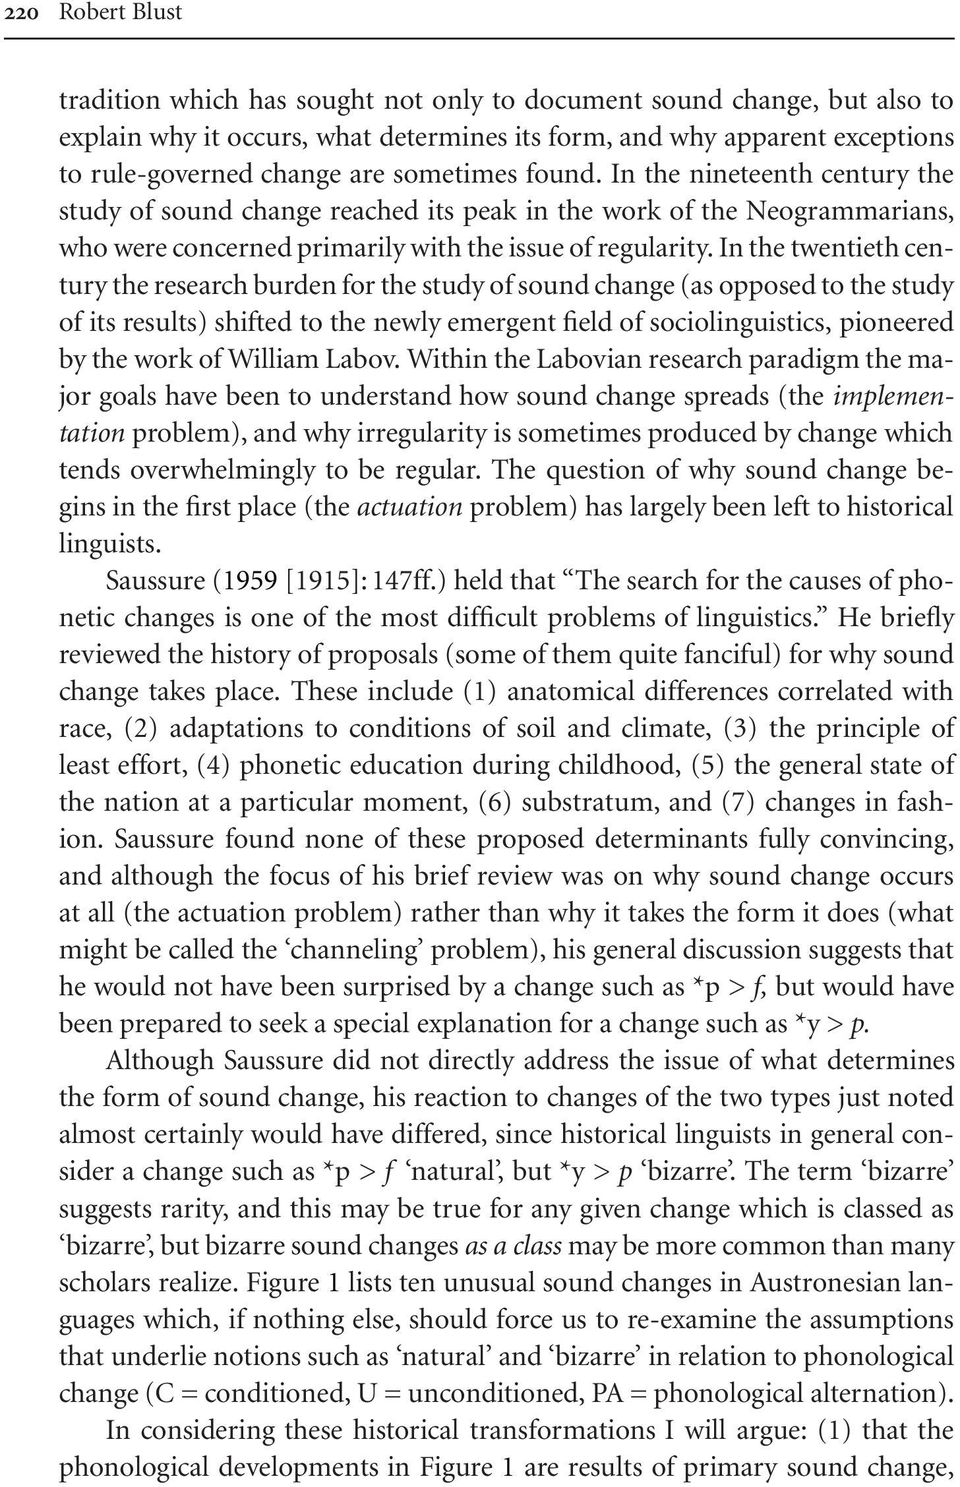 In the twentieth century the research burden for the study of sound change (as opposed to the study of its results) shifted to the newly emergent field of sociolinguistics, pioneered by the work of